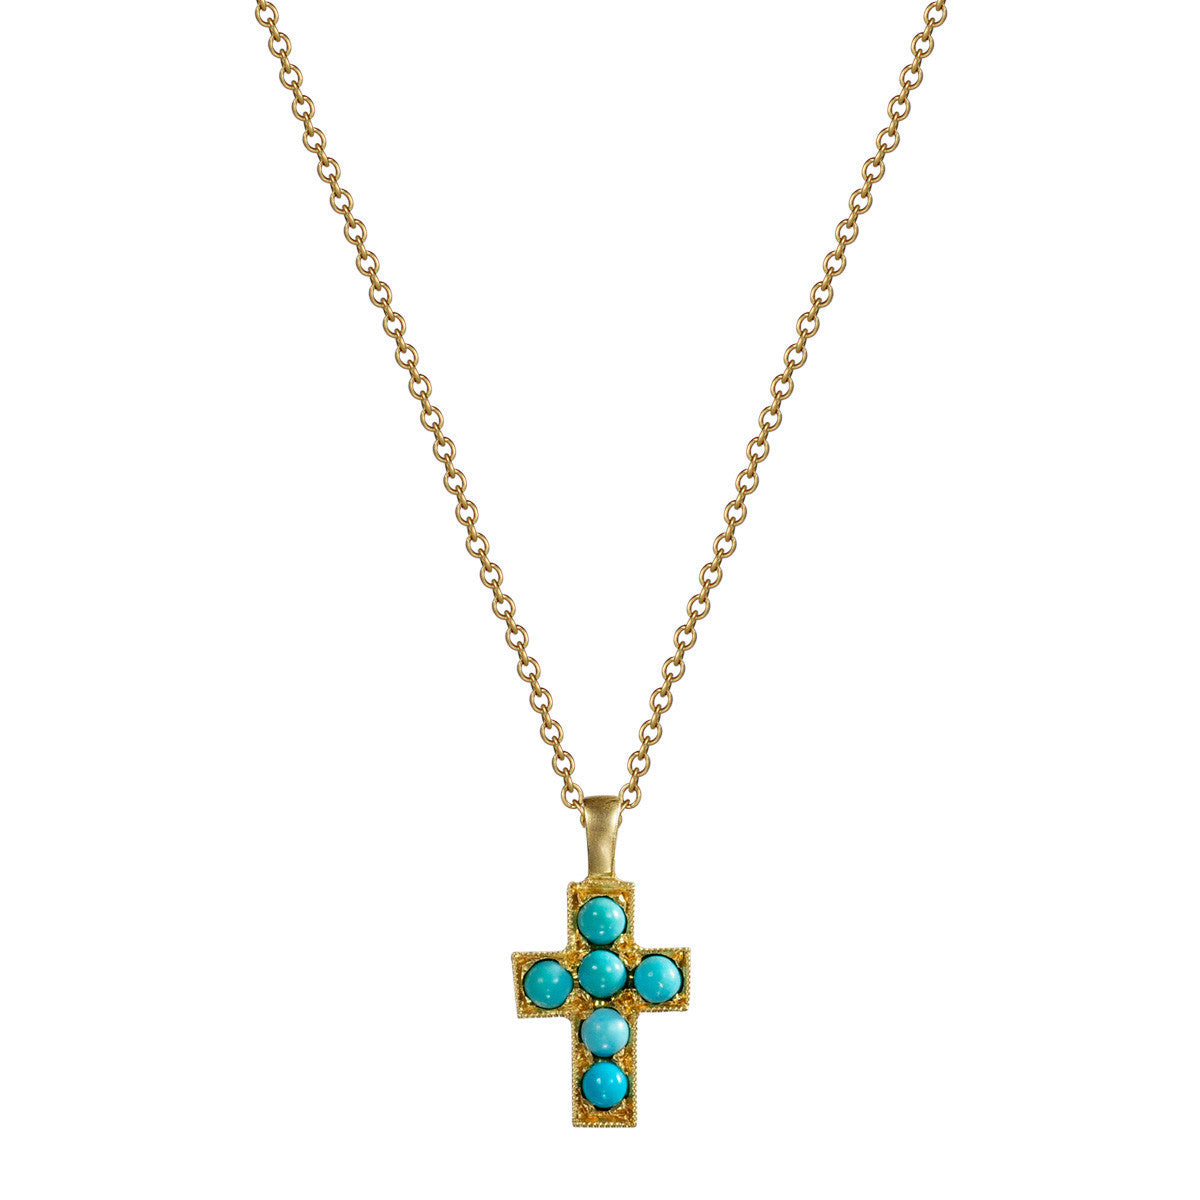 18k gold cross pendant with turquoise stones mero 18k gold cross pendant with turquoise stones aloadofball Image collections